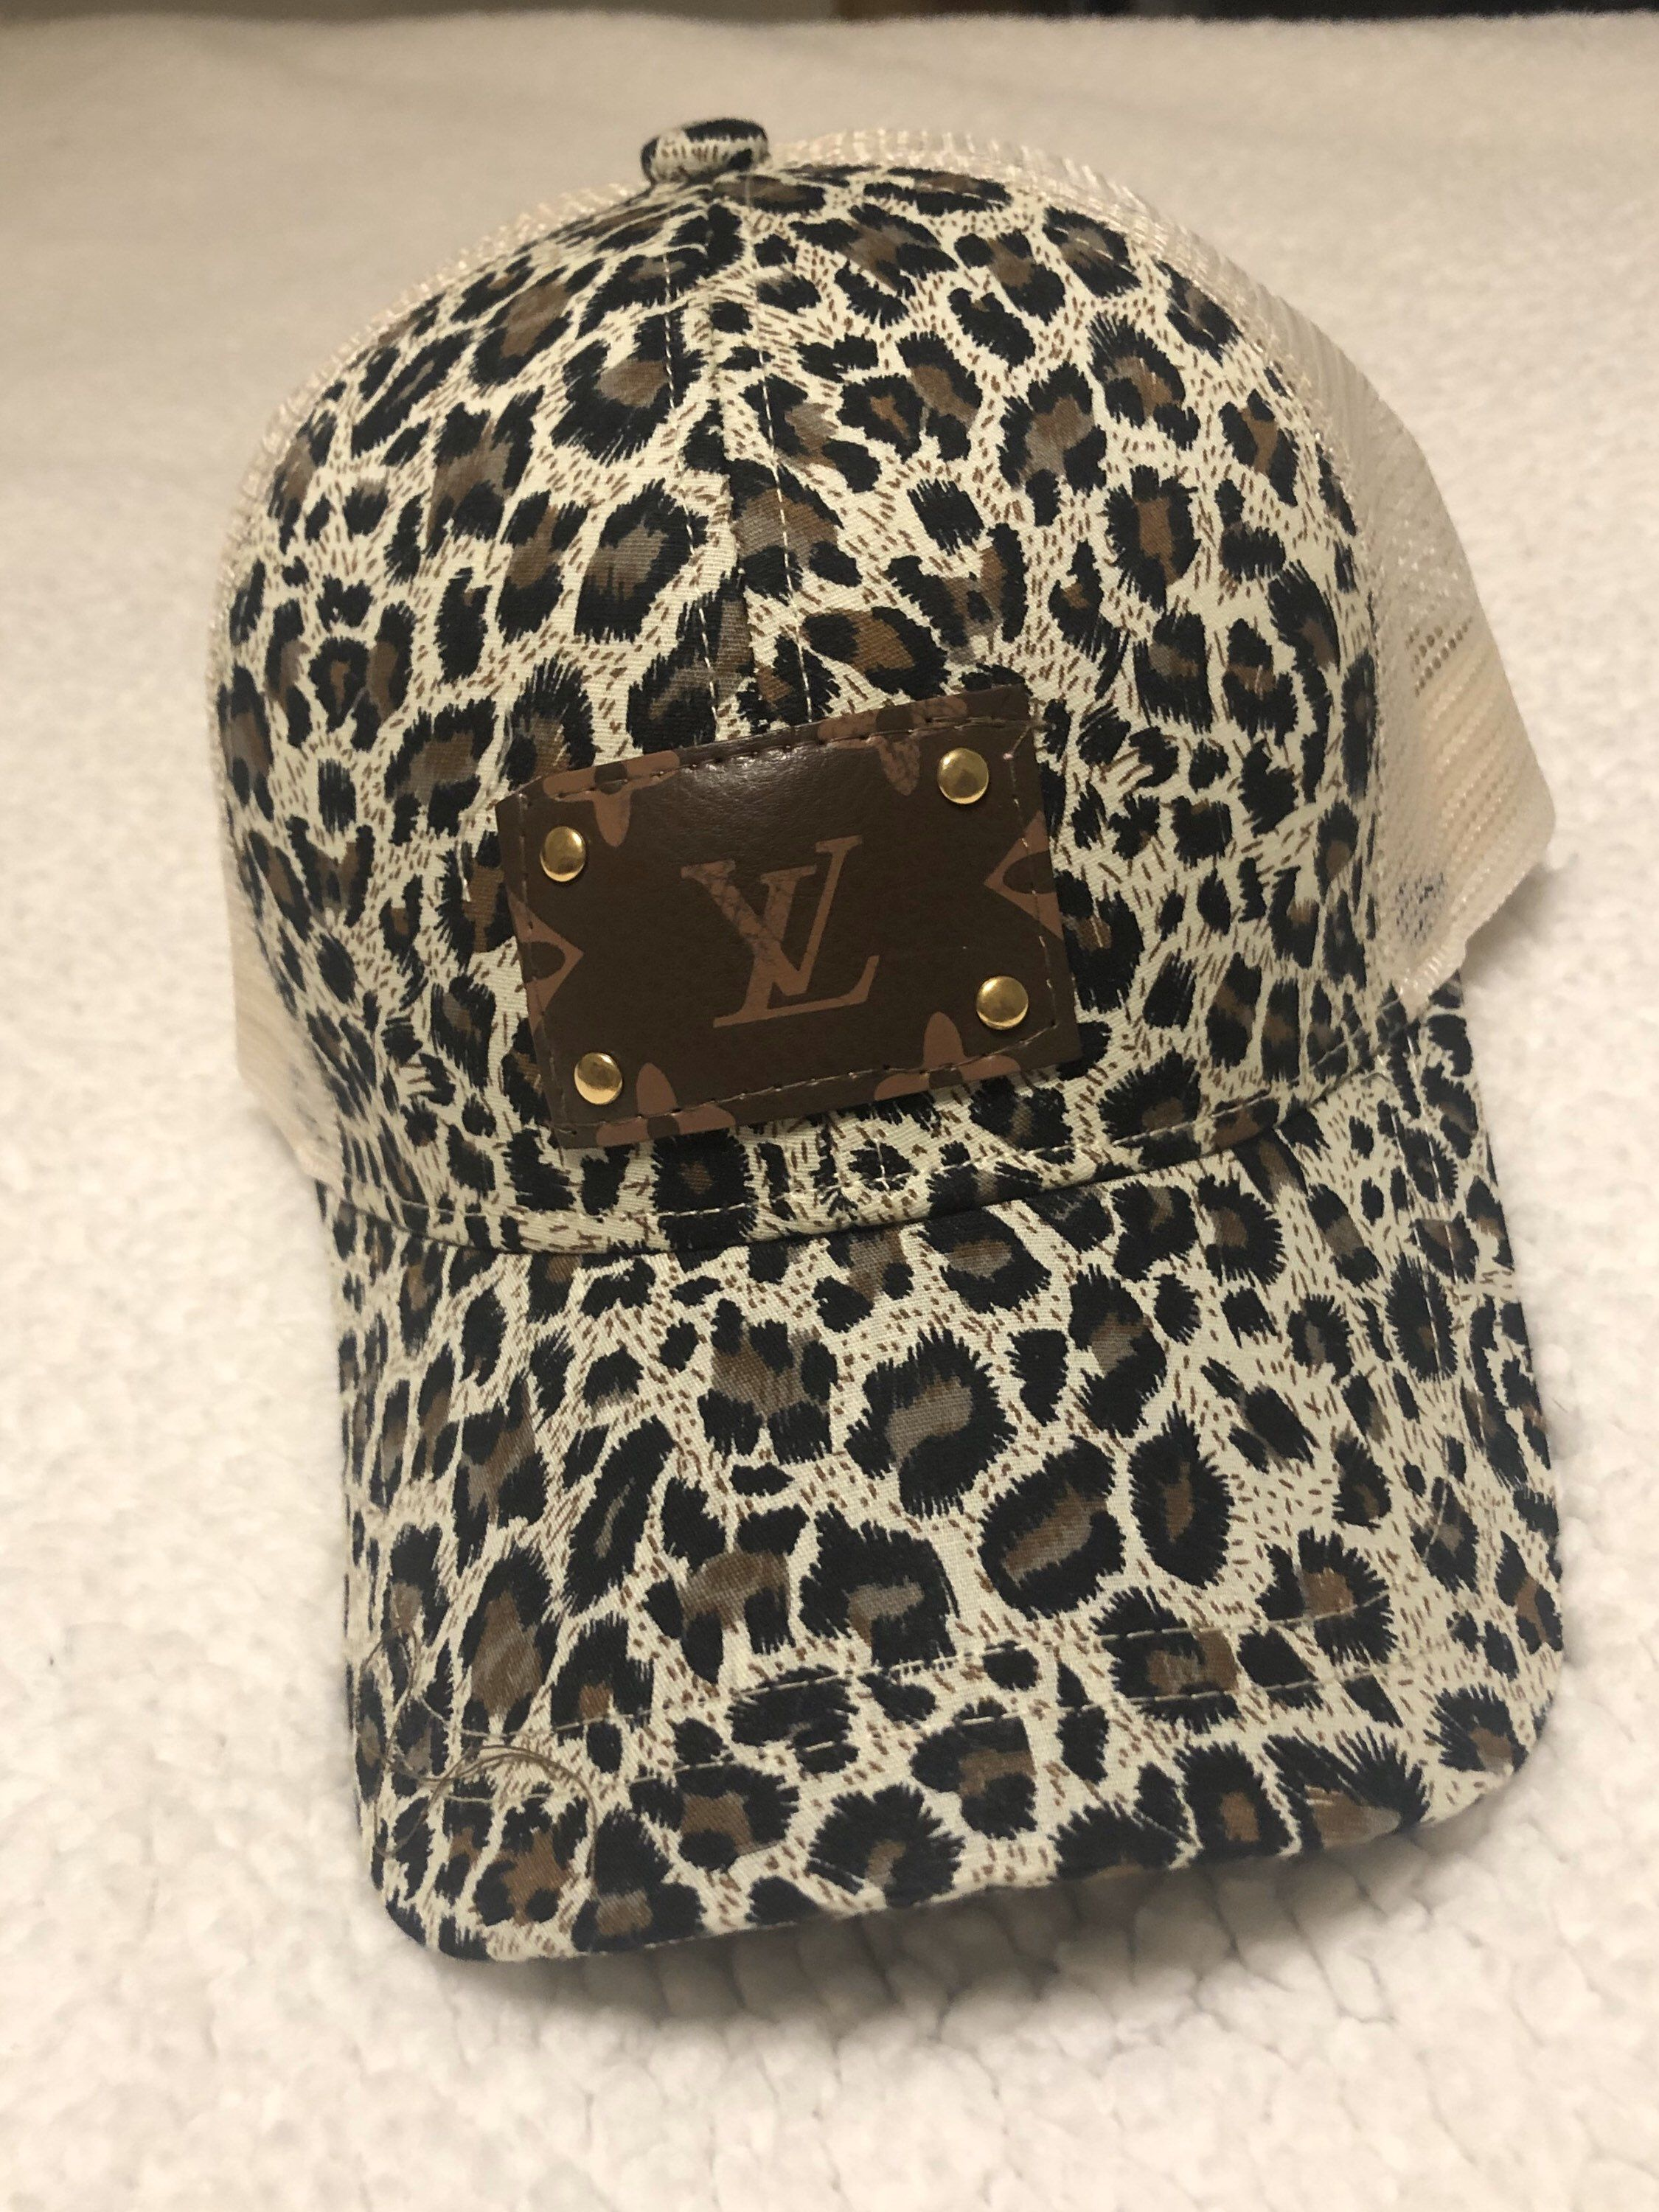 Excited To Share This Item From My Etsy Shop Adorable Louis Vuitton Ball Cap Accessories Hat Upcycledlv Louis Vuitton Hat Ball Cap Upcycled Louis Vuitton